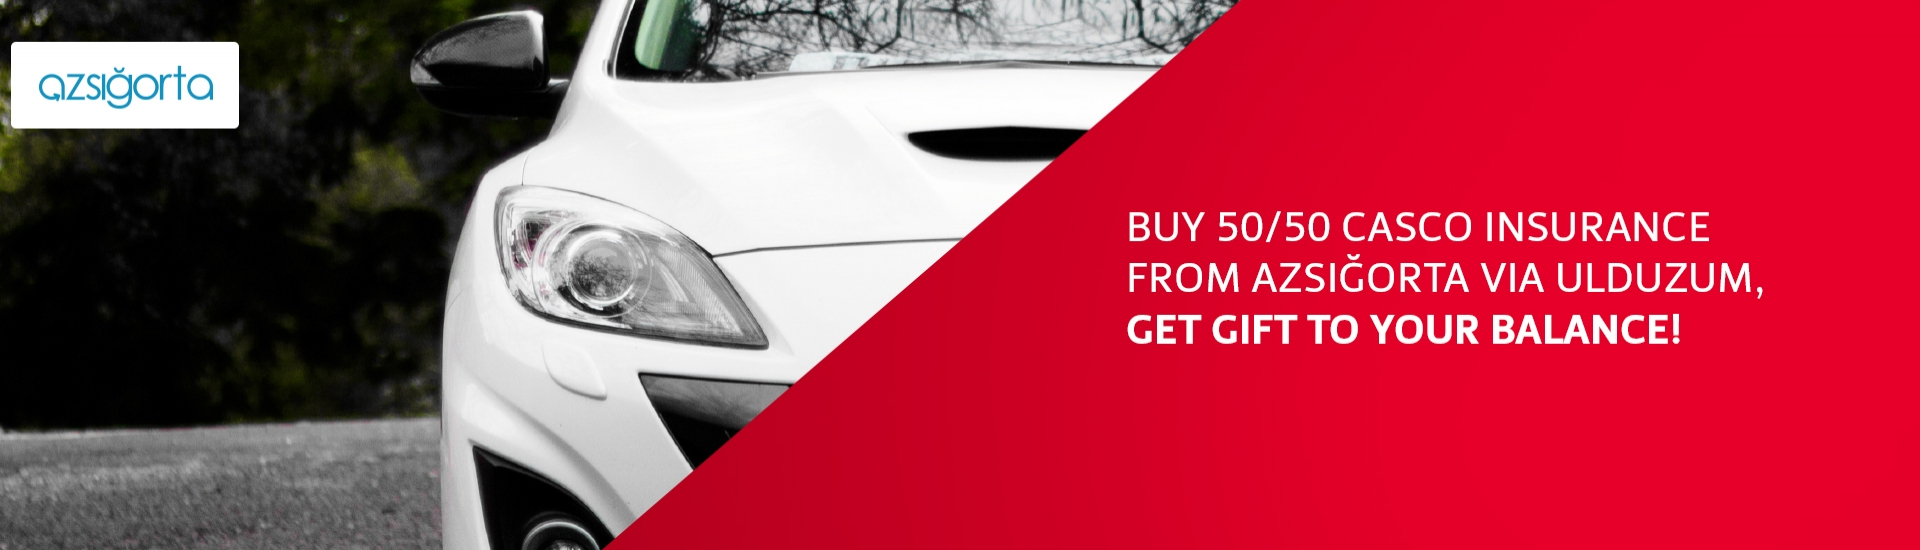 Buy 50/50 CASCO insurance from AZSIĞORTA via Ulduzum, get GIFT to your balance!